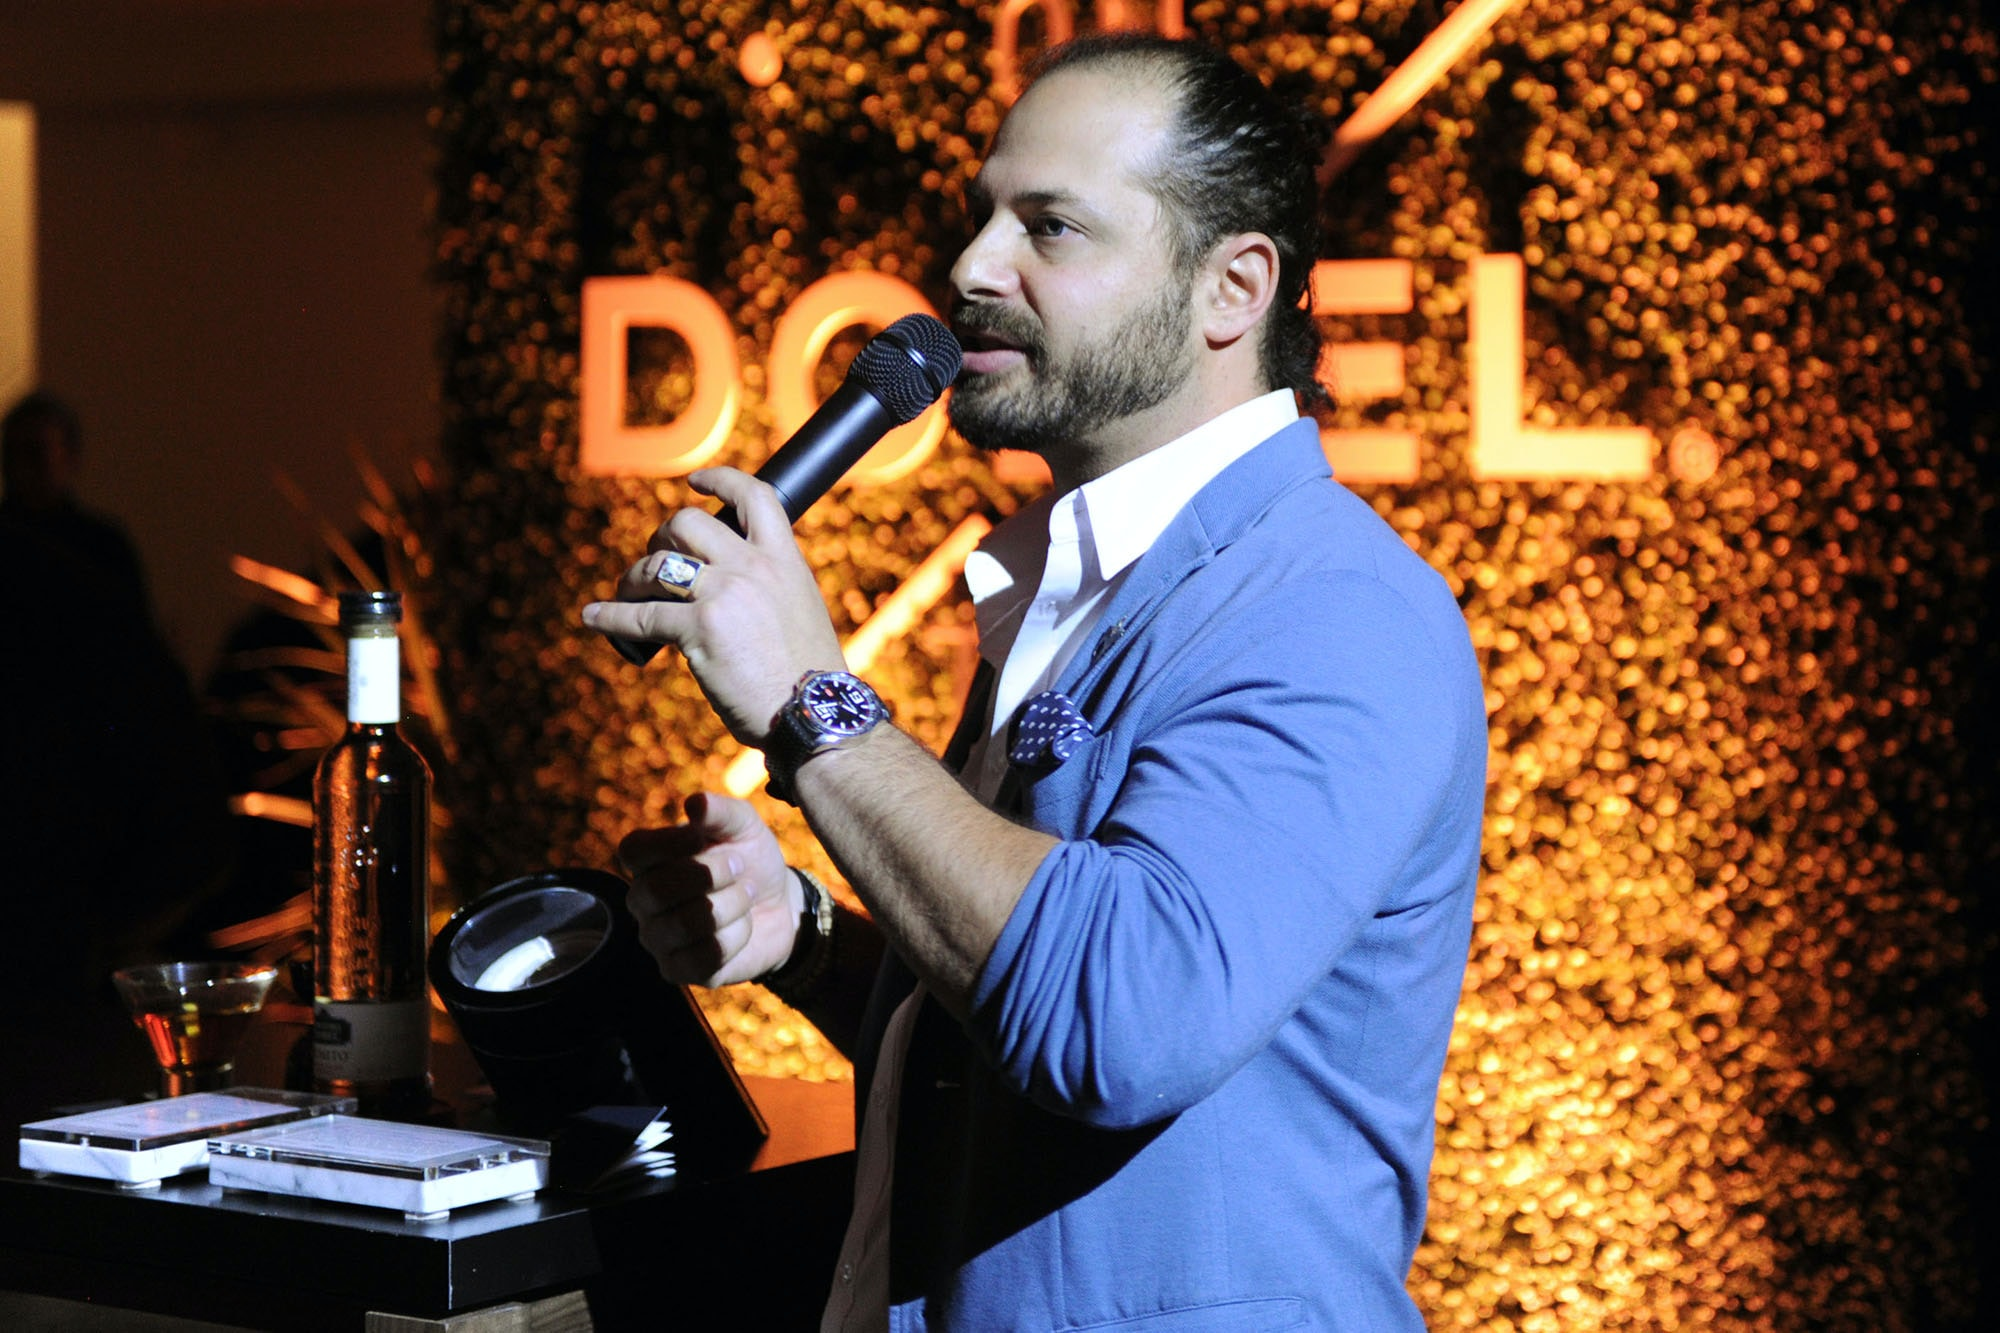 Photo Report: The Dobel x HODINKEE Events In New York And Miami – And An Invitation To Celebrate With Us In LA, Wednesday Night! Photo Report: The Dobel x HODINKEE Events In New York And Miami – And An Invitation To Celebrate With Us In LA, Wednesday Night! Cody Goldstein speaking7